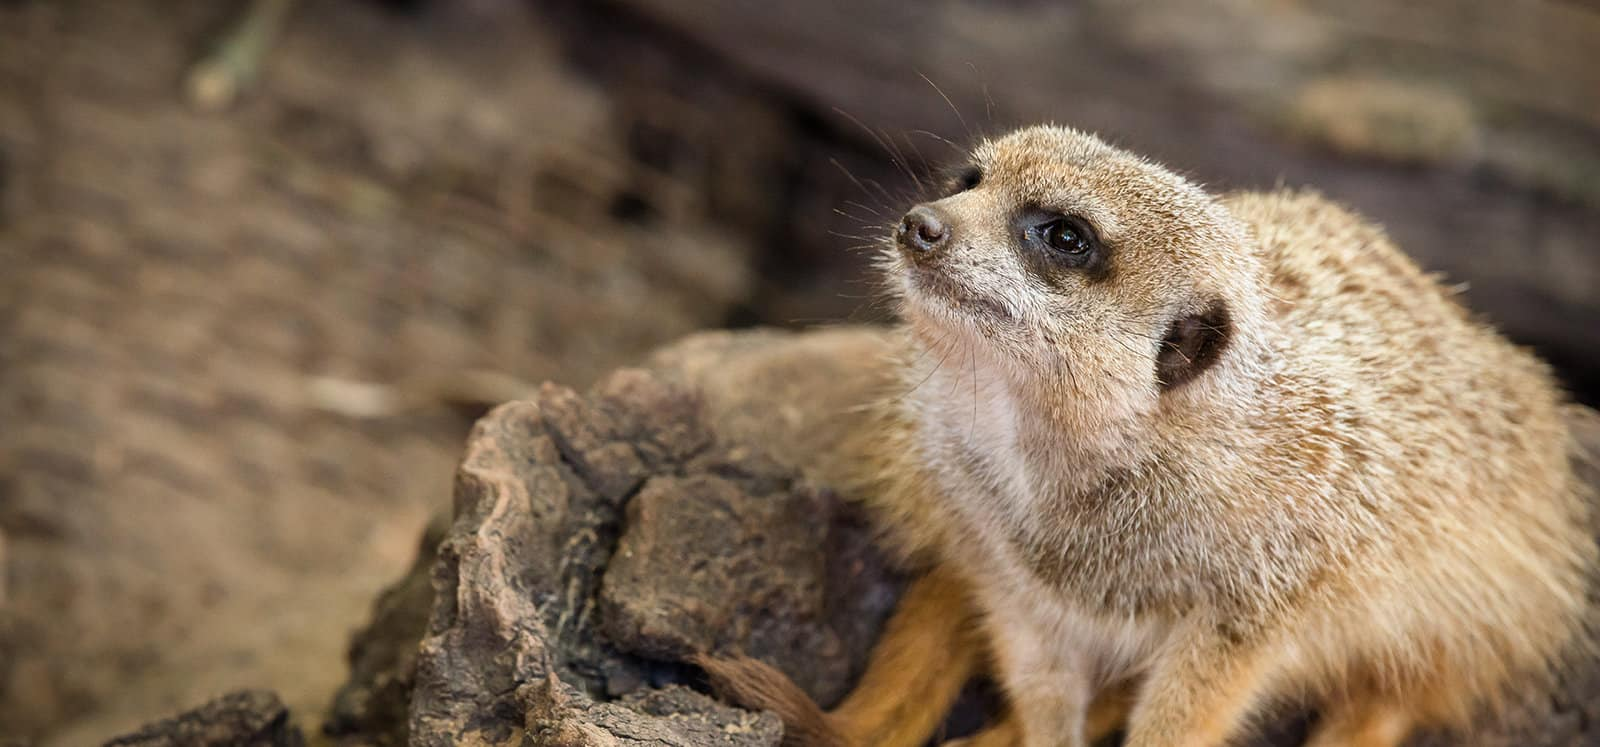 Meerkat encounter at Adelaide Zoo